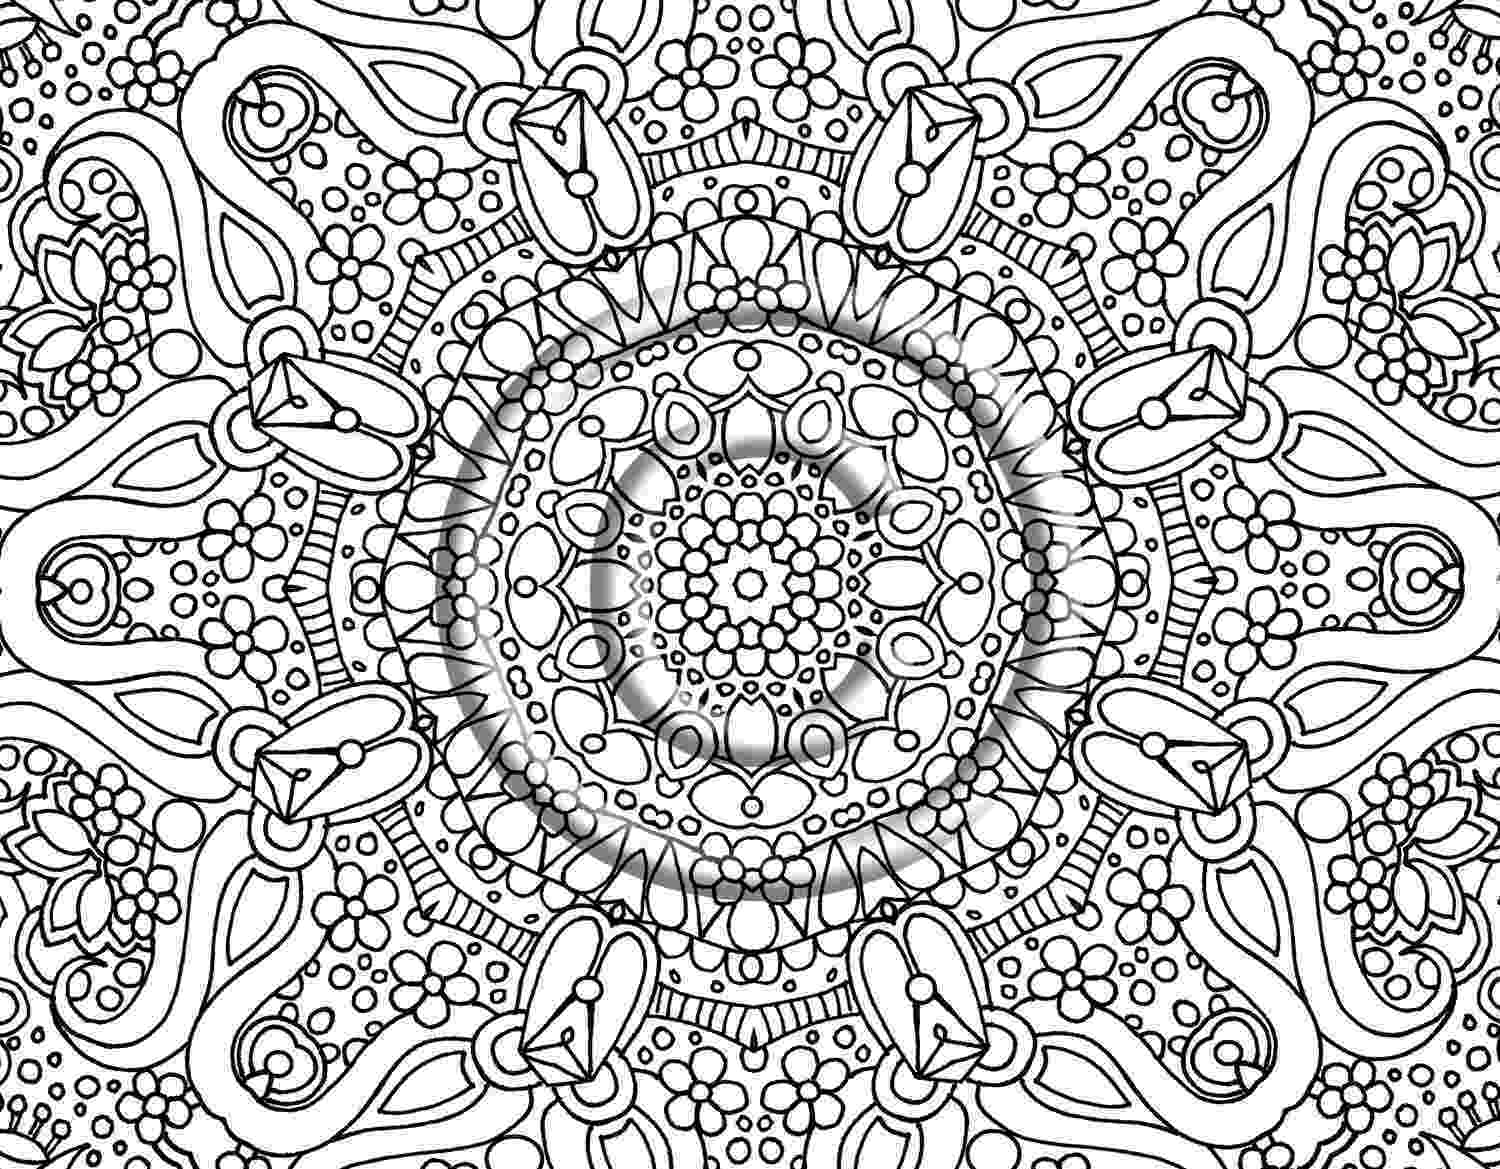 design coloring page colouring designs thelinoprinter coloring design page